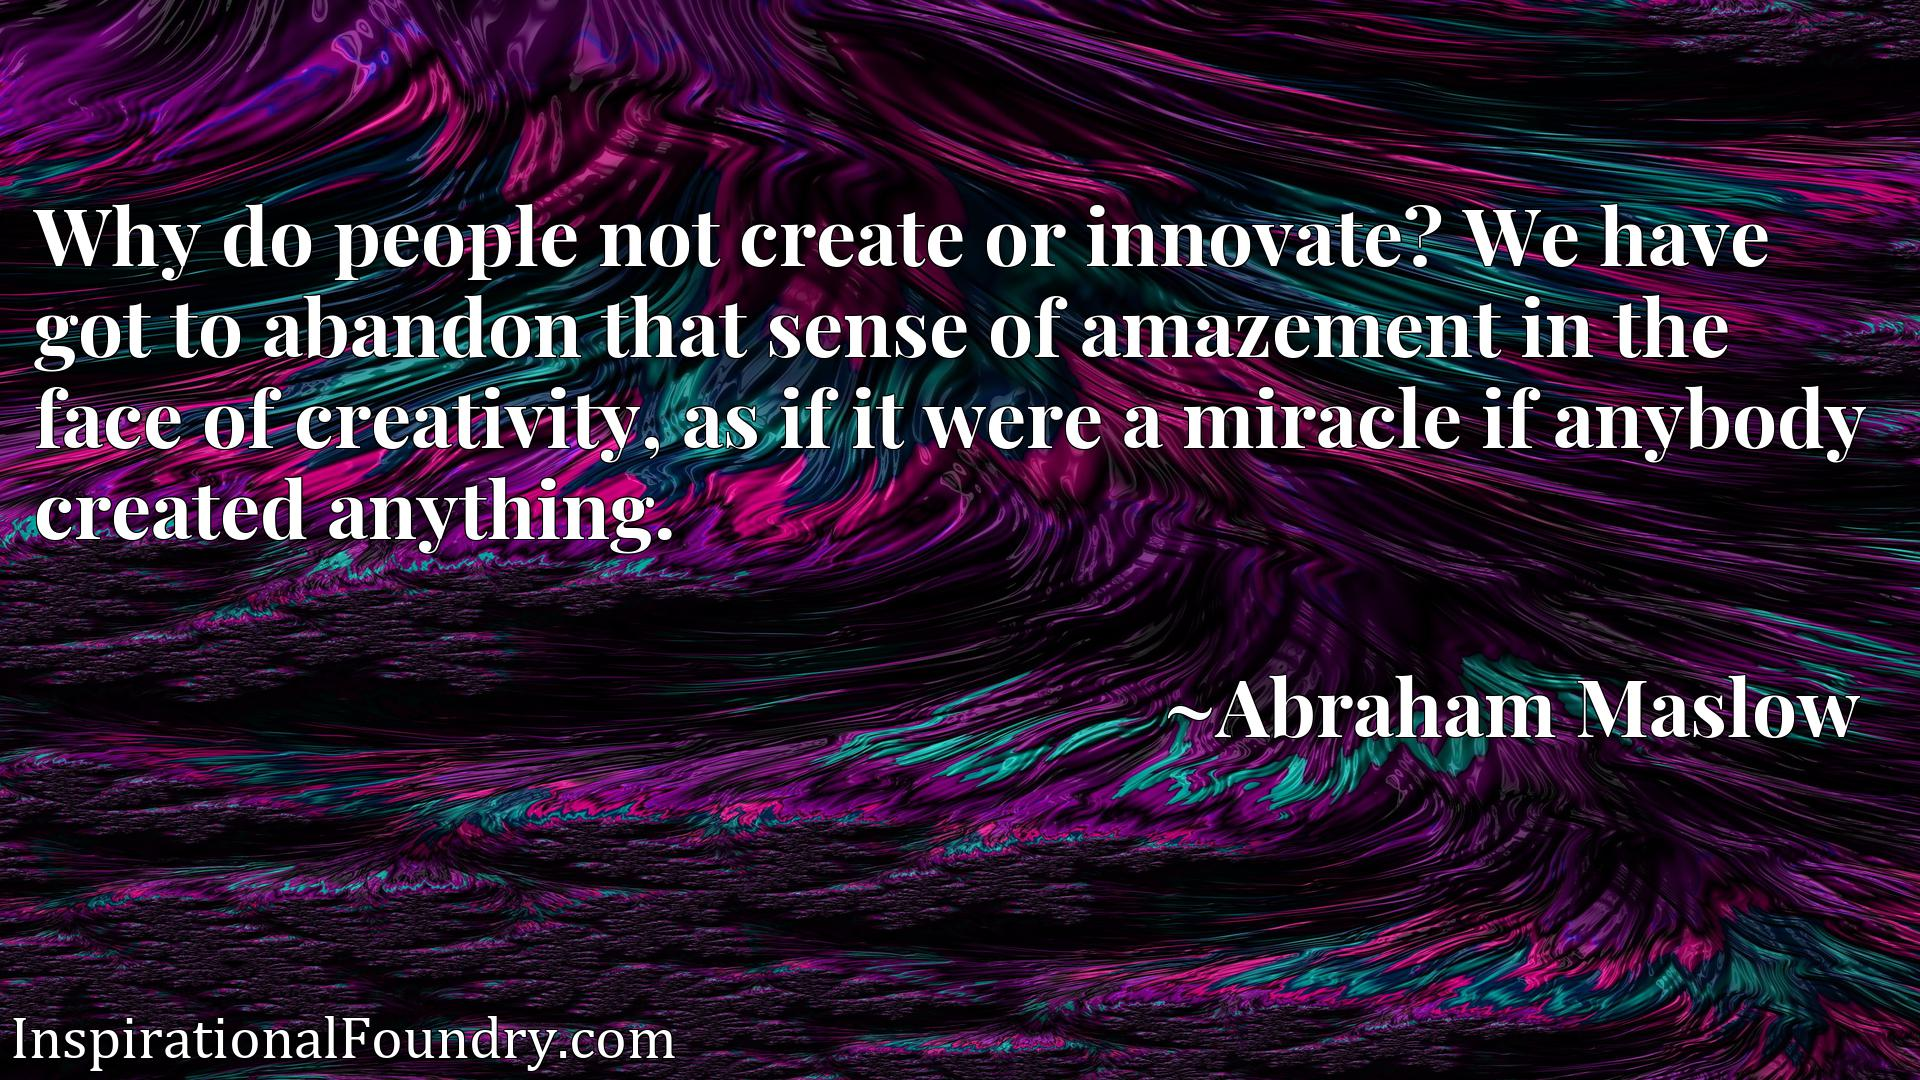 Why do people not create or innovate? We have got to abandon that sense of amazement in the face of creativity, as if it were a miracle if anybody created anything.